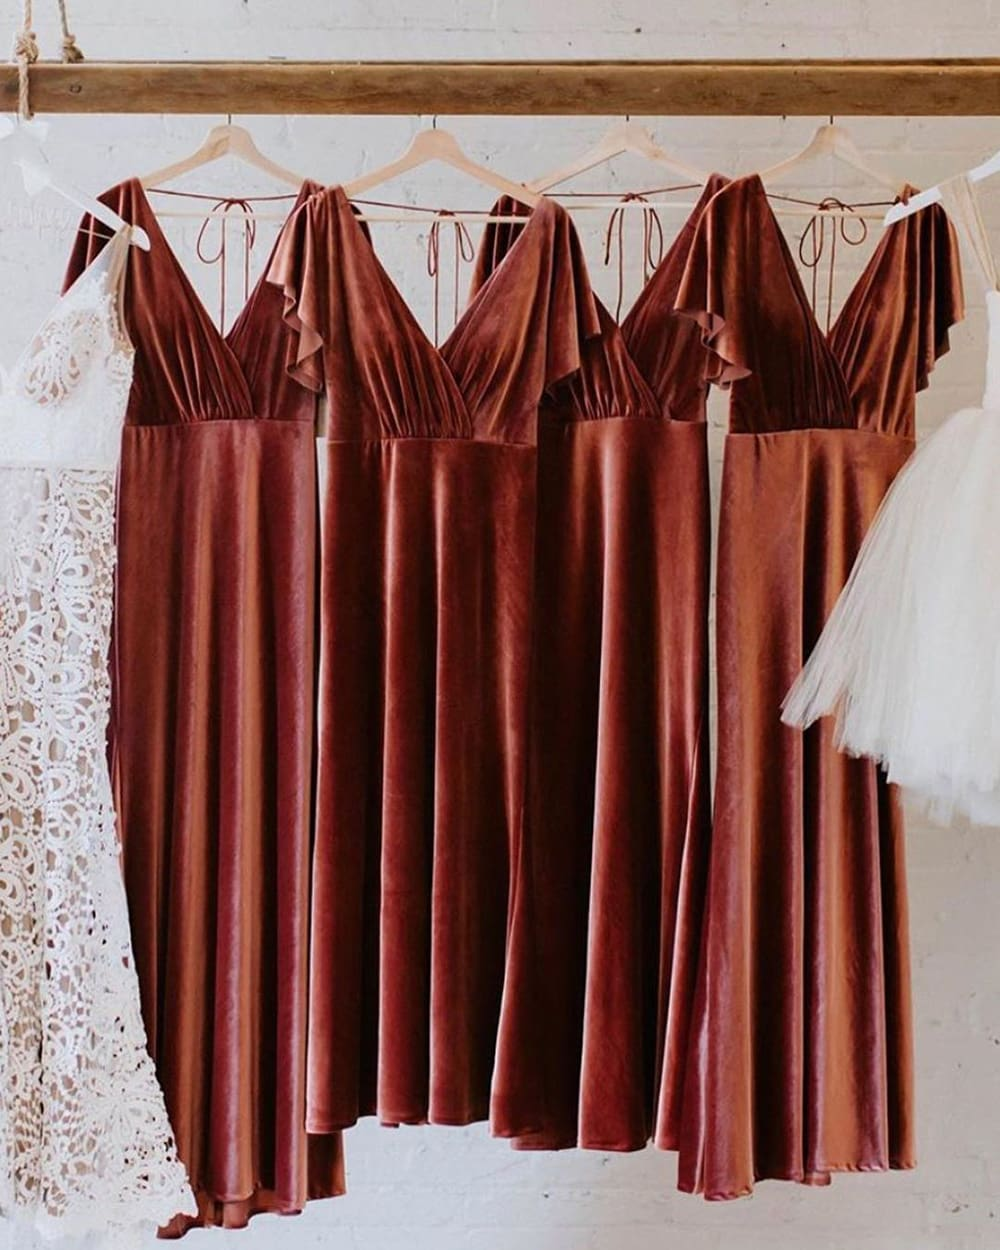 10 Fun Things to Do on Your Wedding Morning with Your Bridesmaids | Photography: Kaley Rae Photography